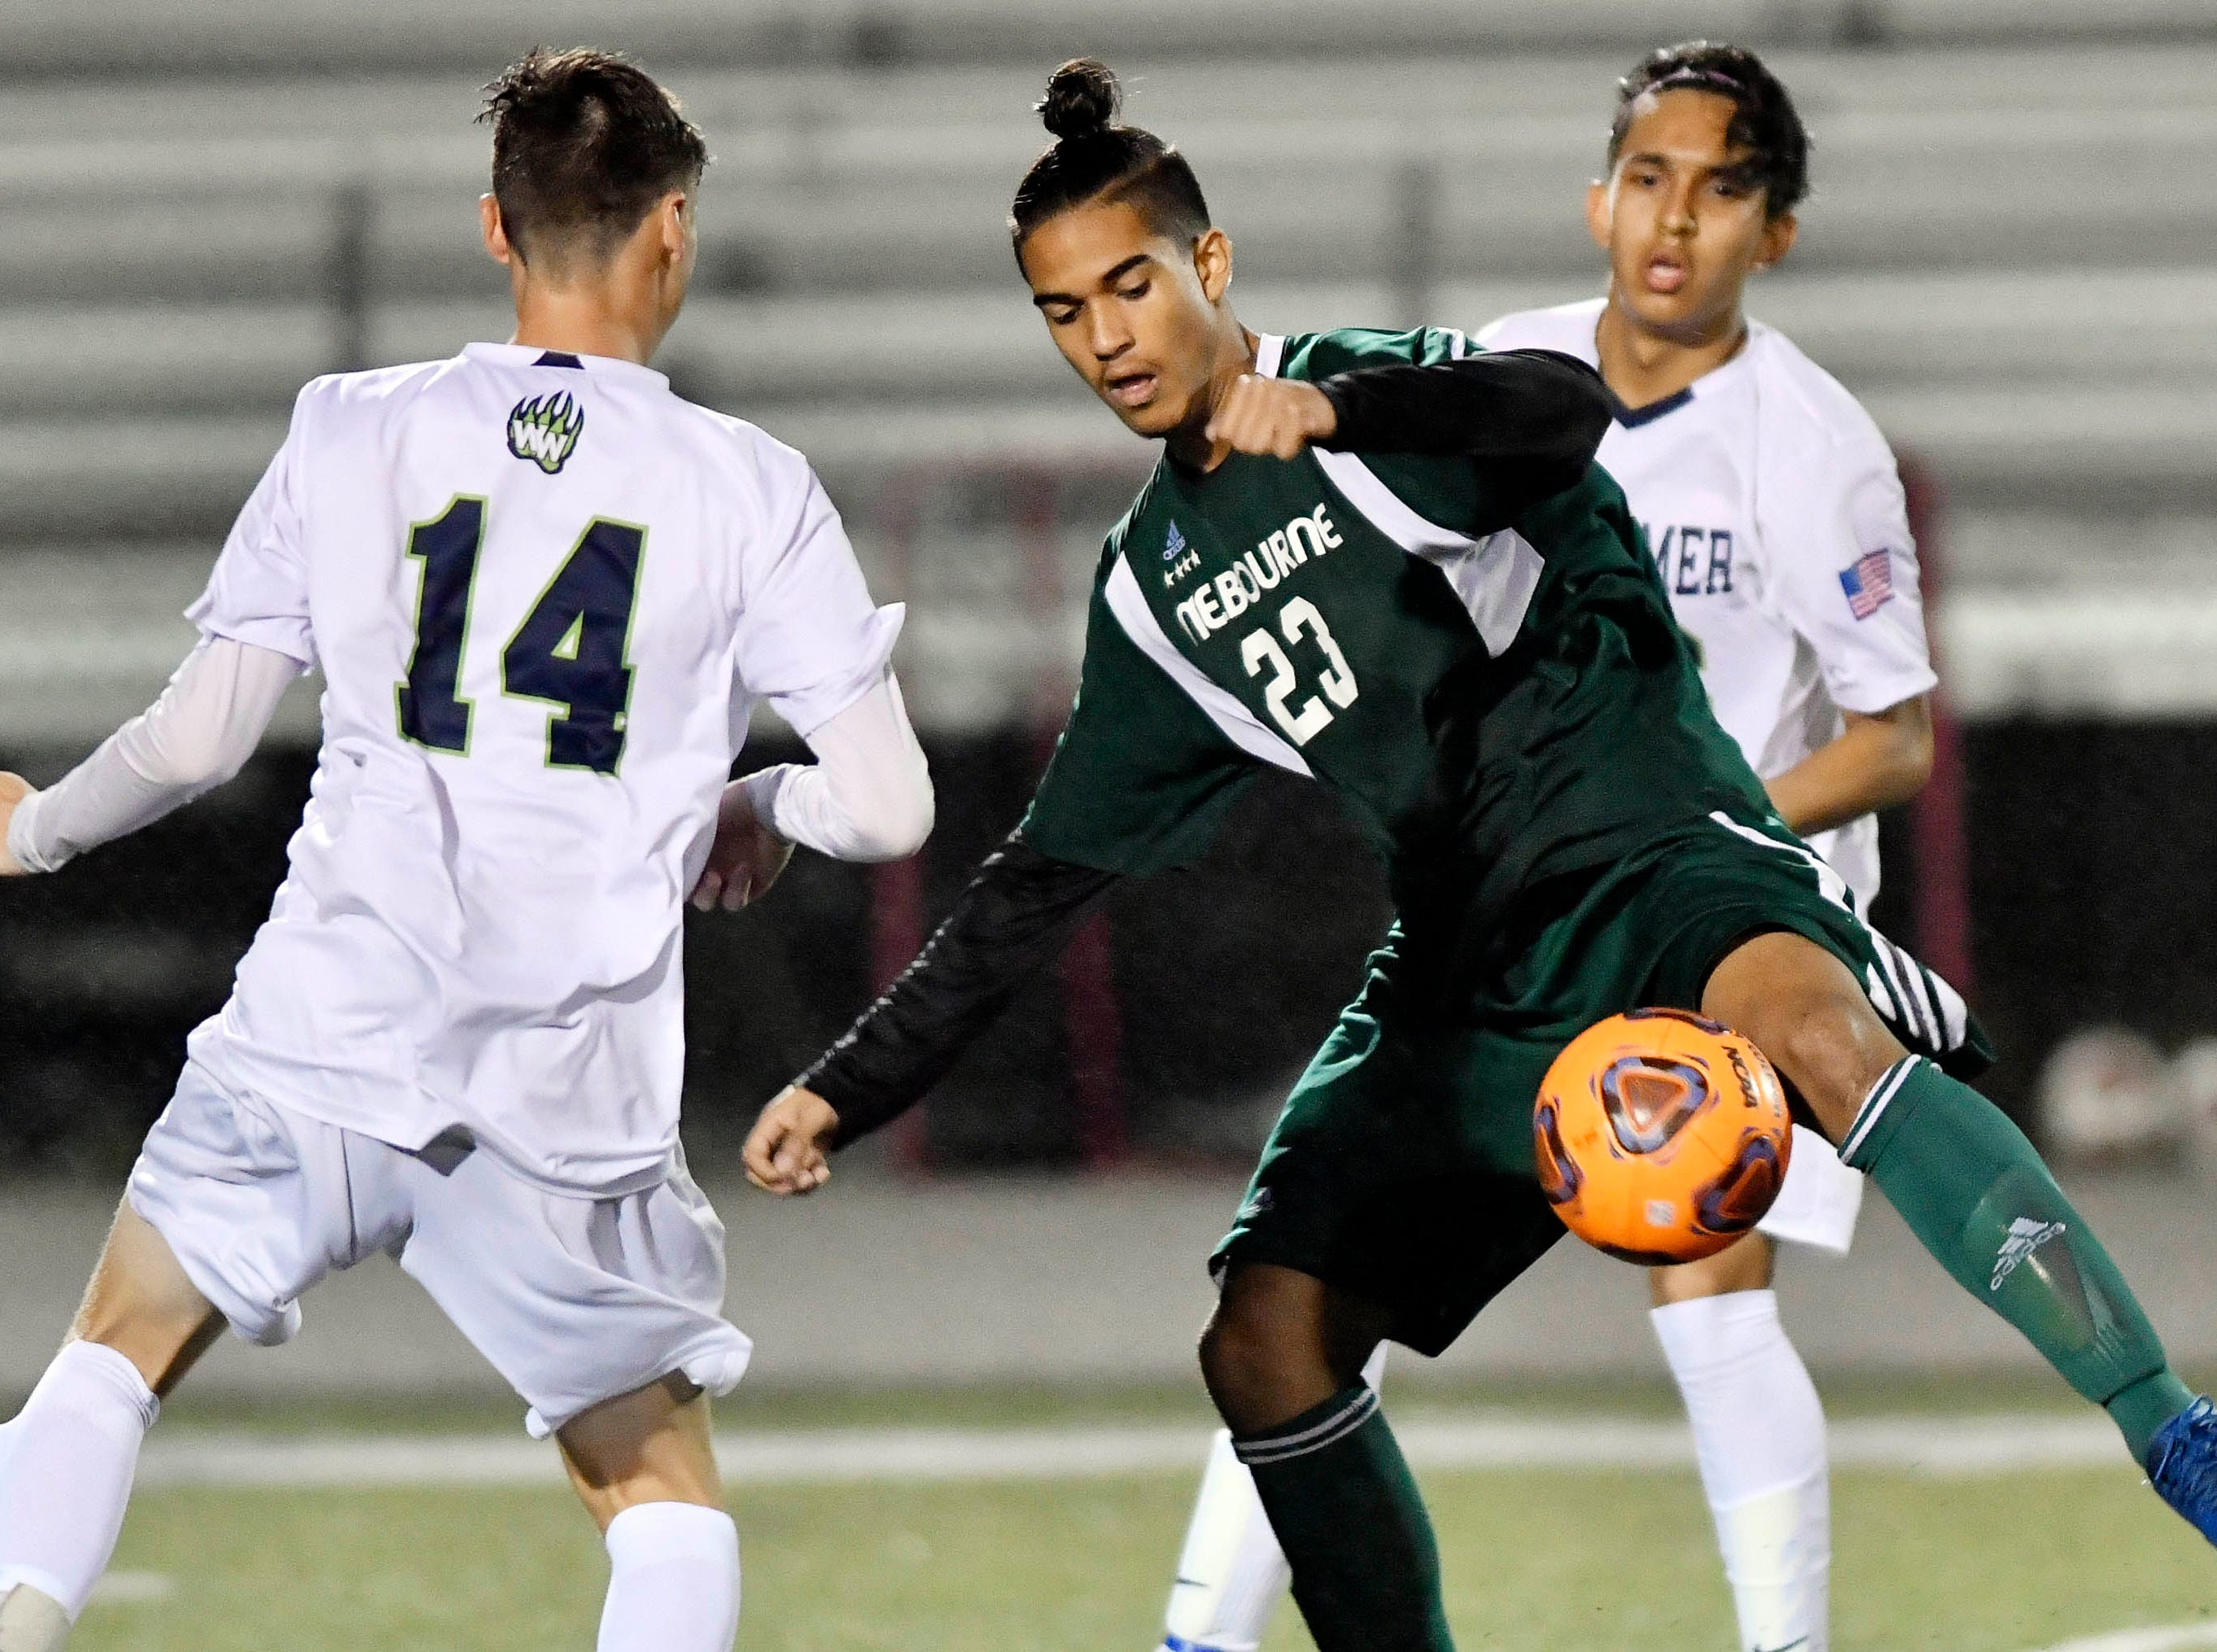 Melbourne's Mekhi Robinson maneuvers between a pair of Windermere defenders during Saturday's Class 4A boys soccer regional semifinal.